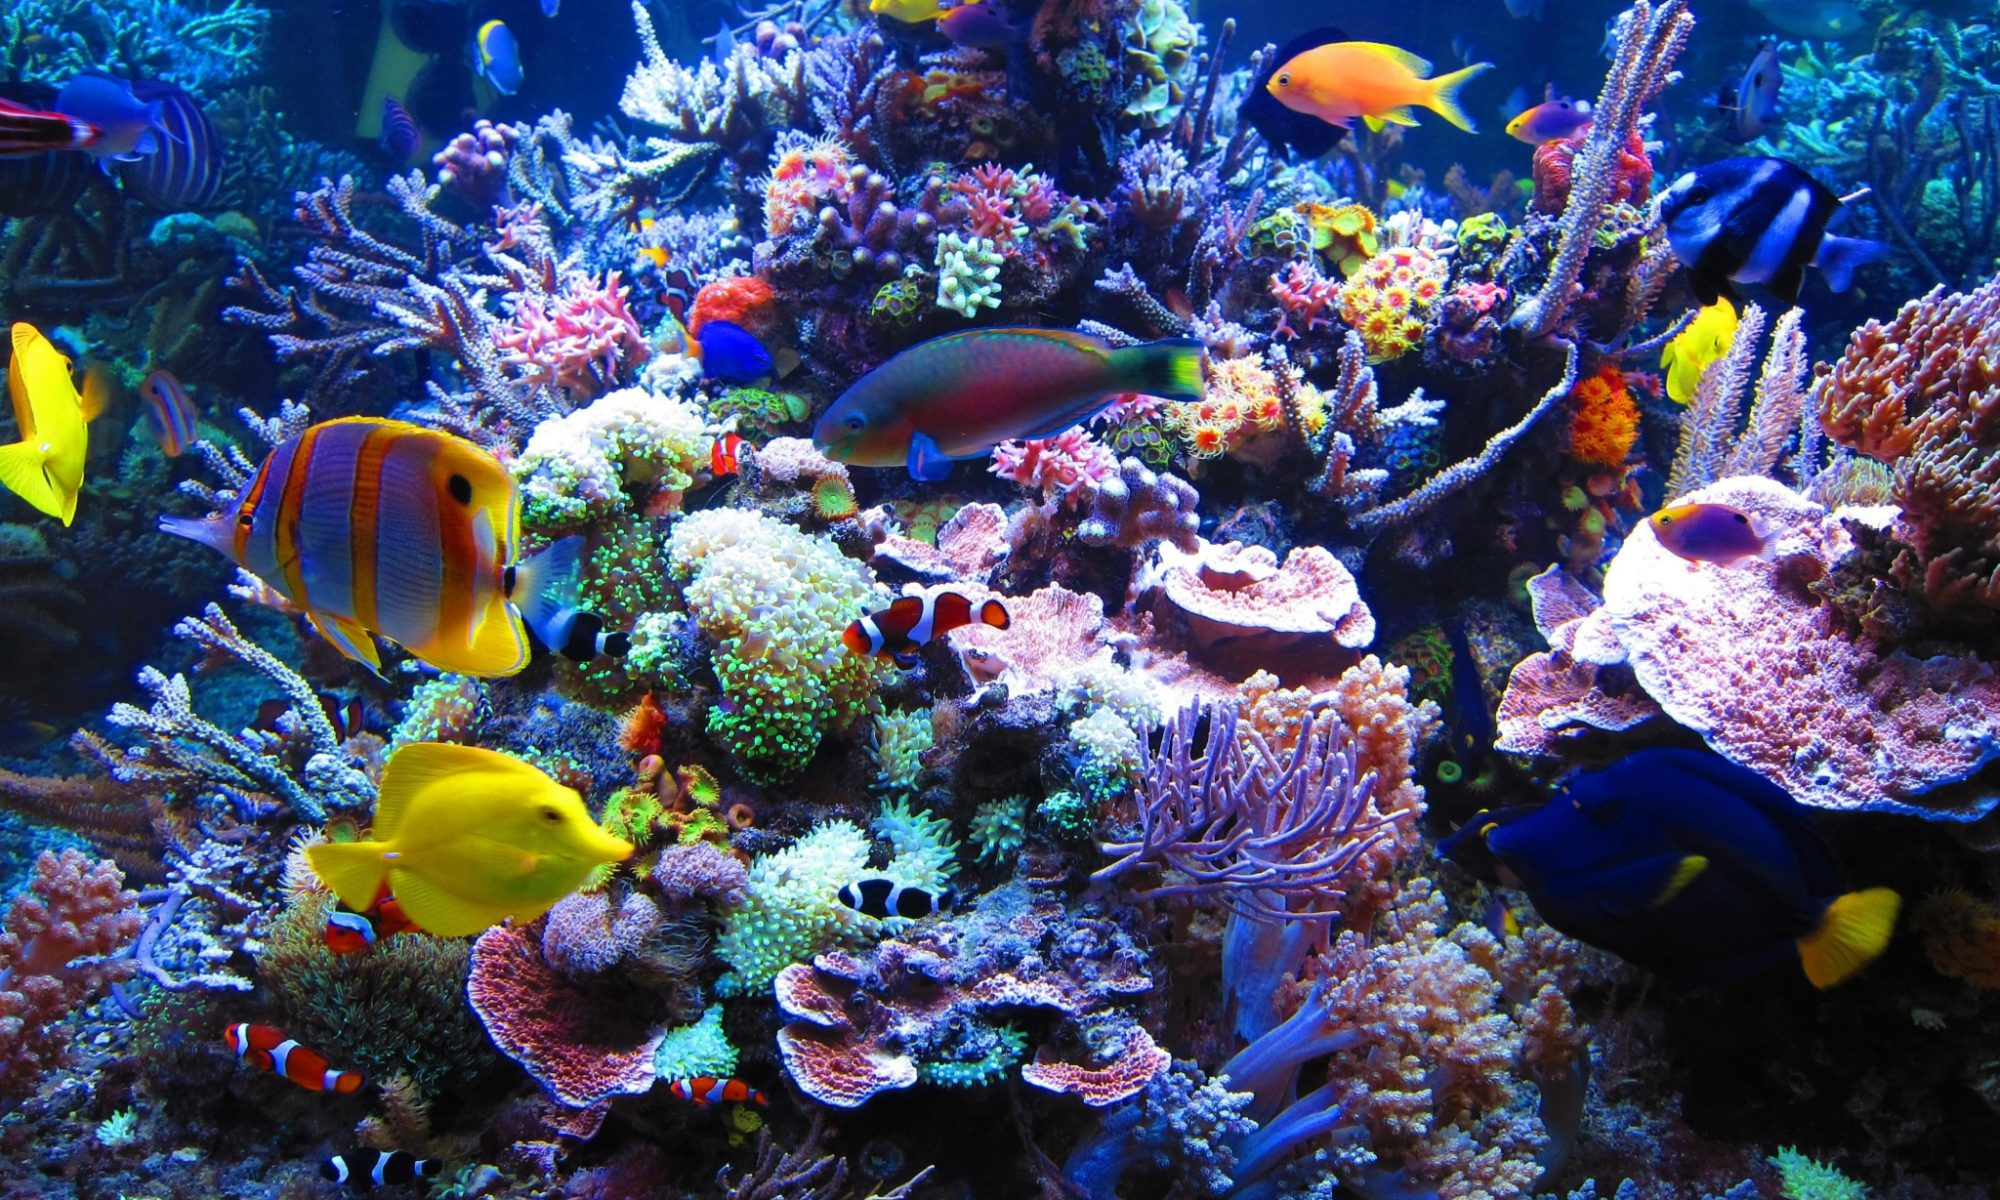 7 Steps to Start an Aquarium